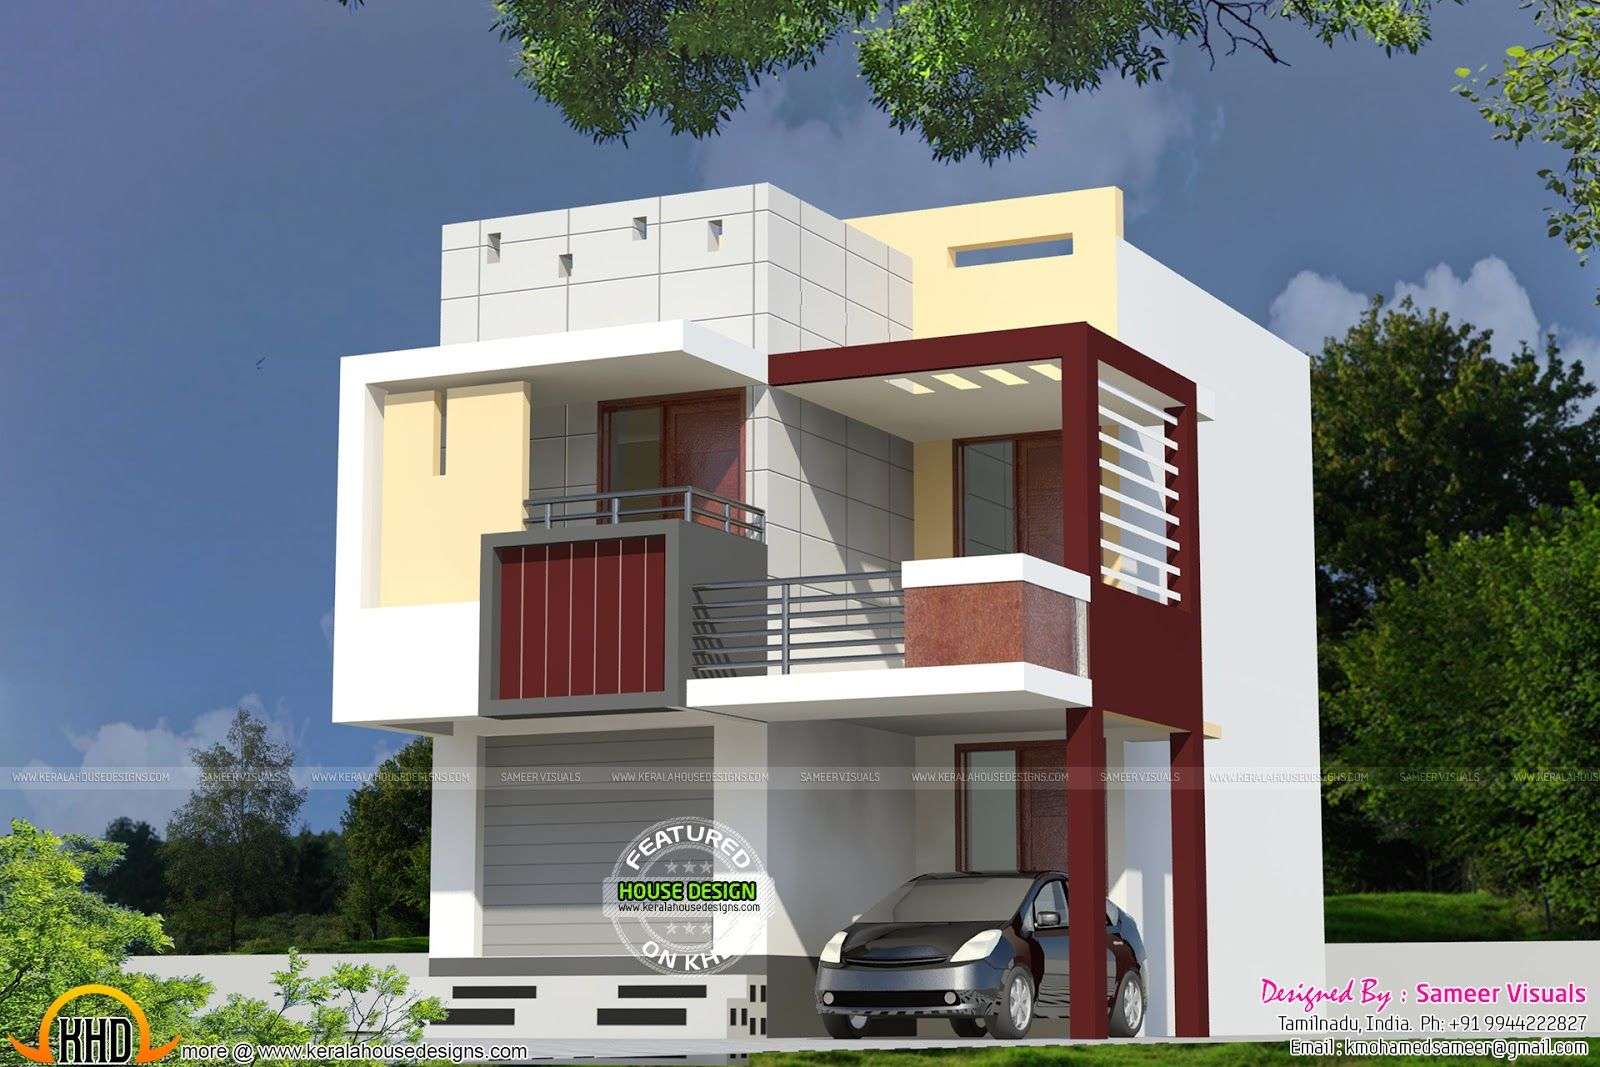 Very small double storied house house elevation indian compact pinterest story house - Houses bedroom first floor fit needs ...